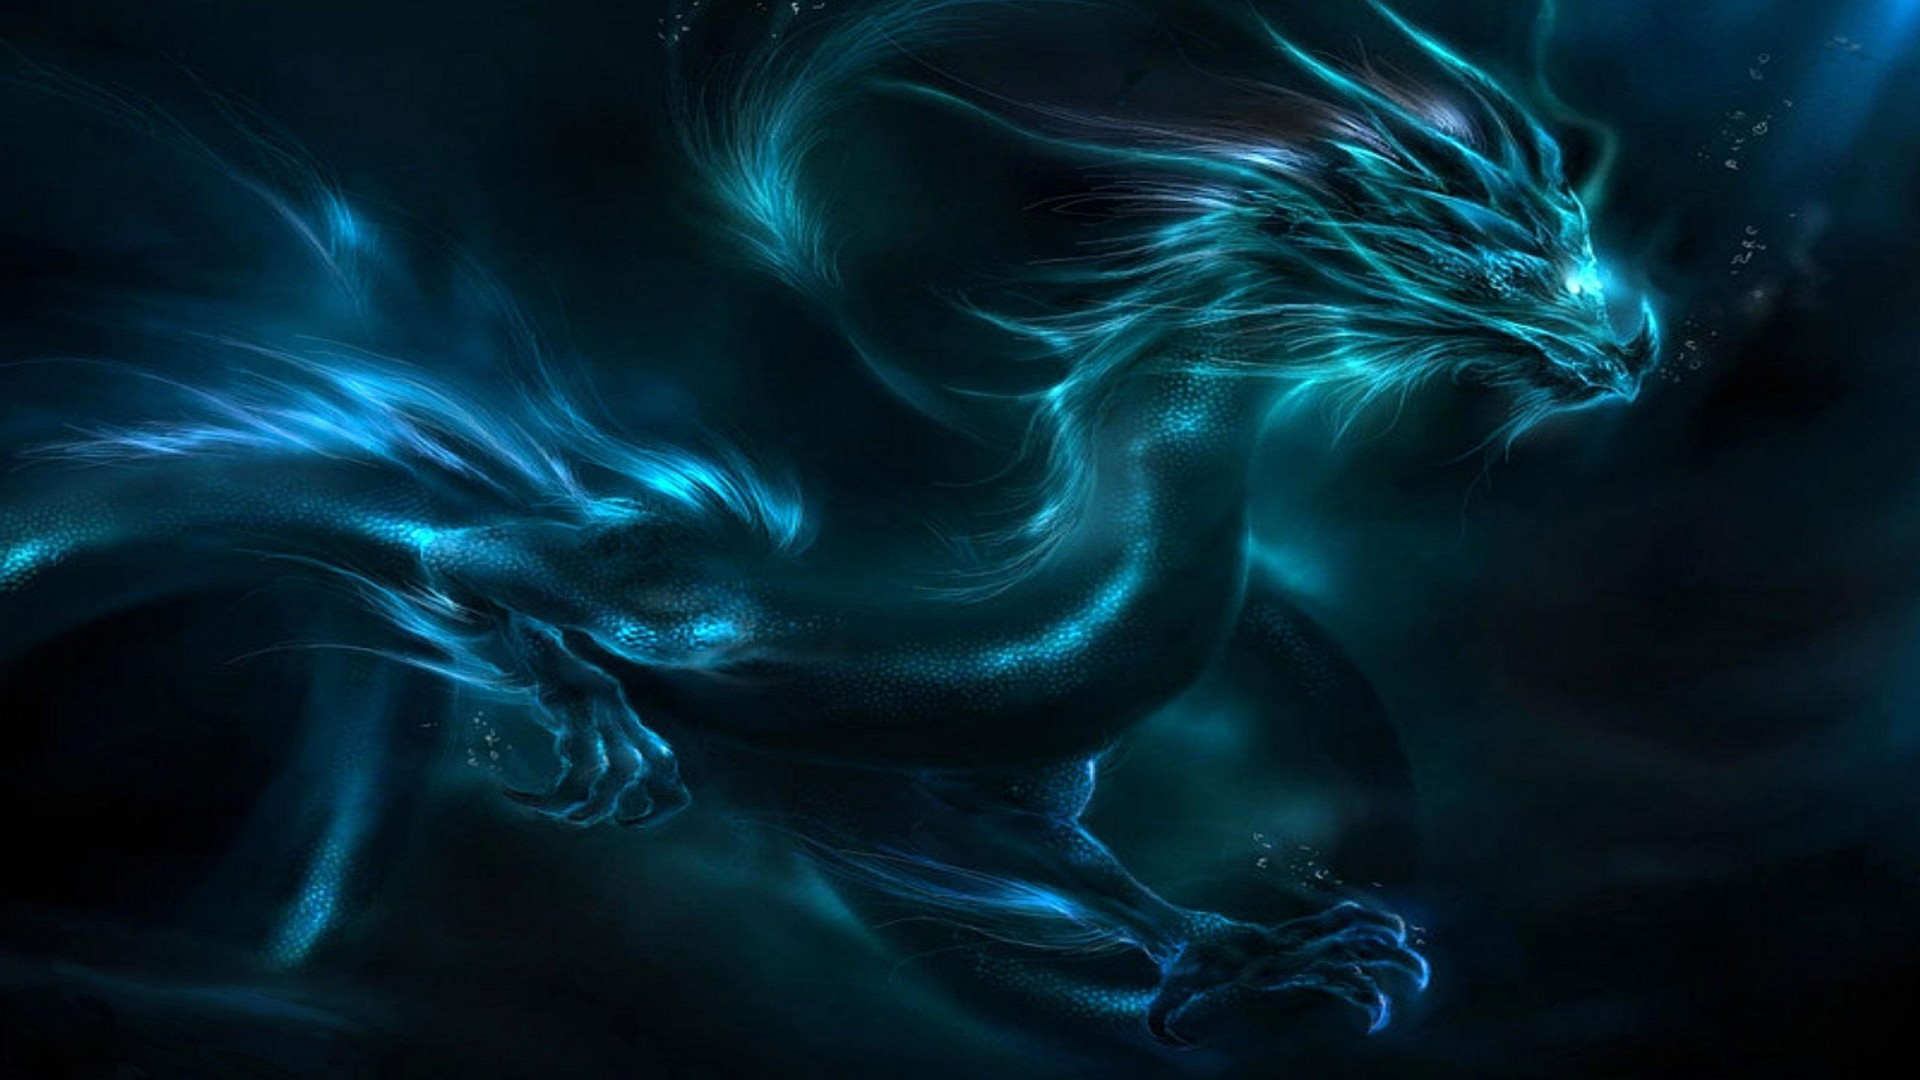 Dragon Wallpapers Hd Download Free Pixelstalk Net